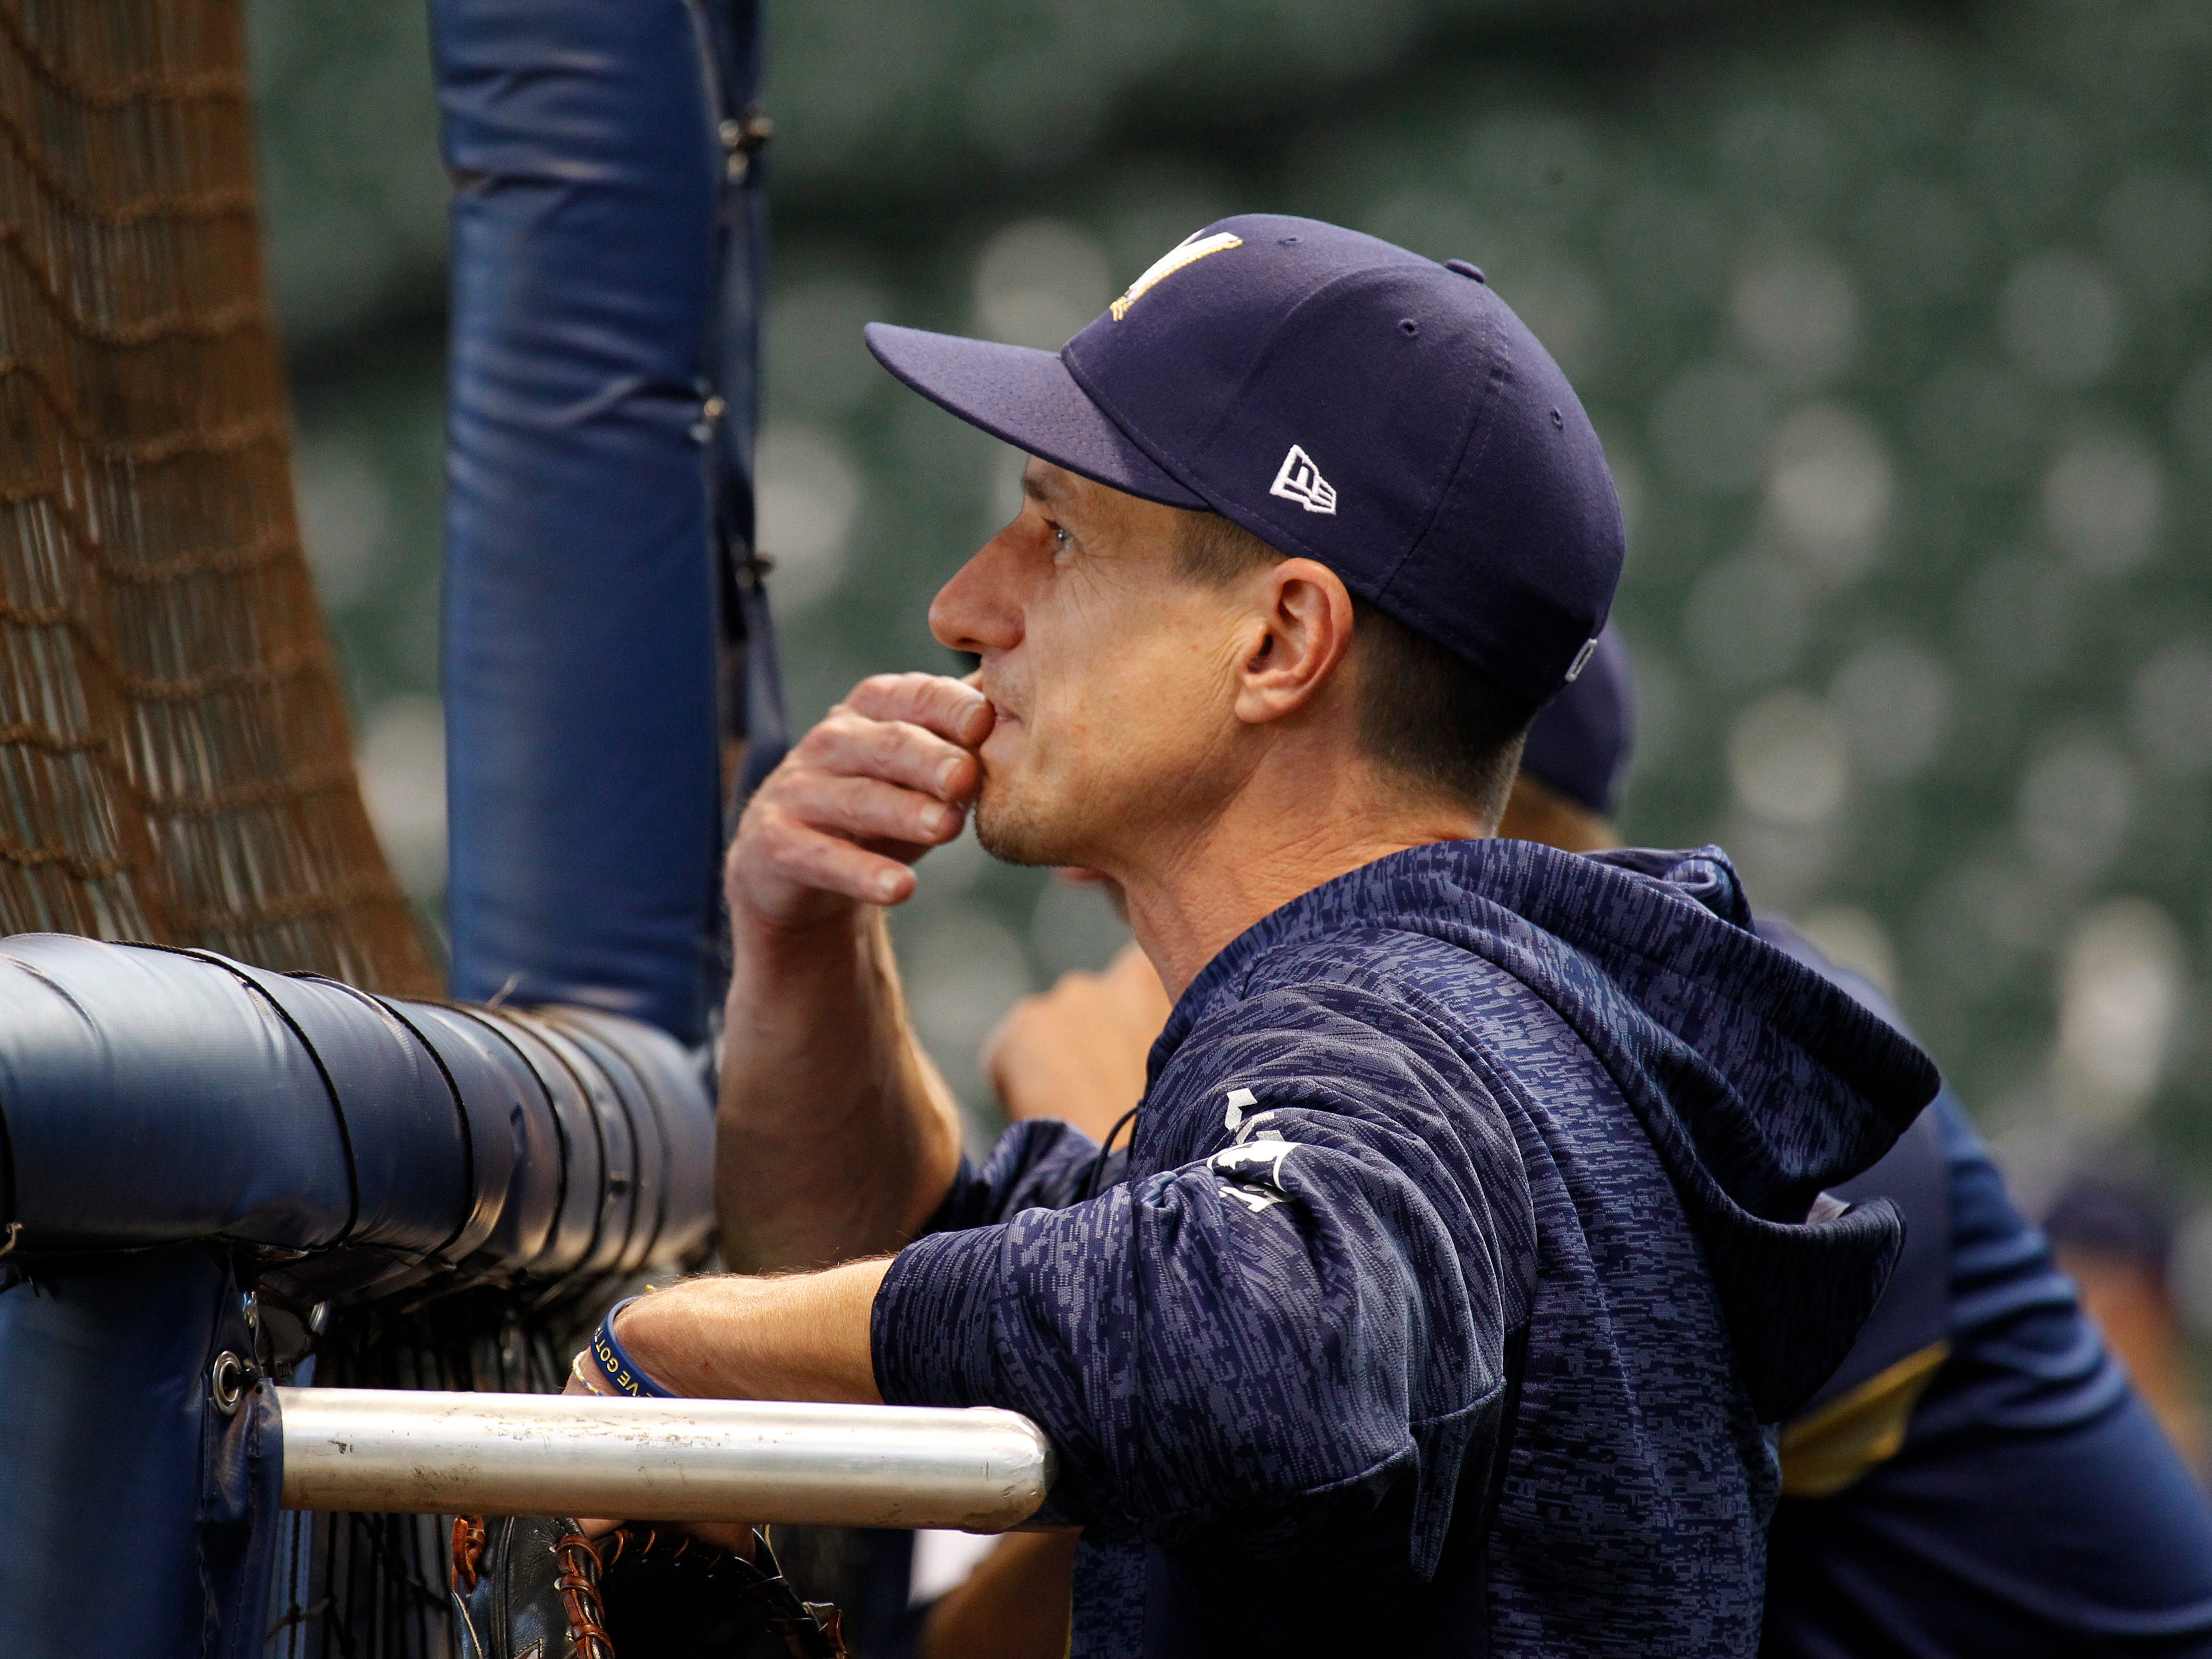 Brewers manager Craig Counsell watches practice from behind the batter's cage on Wednesday at Miller Park.